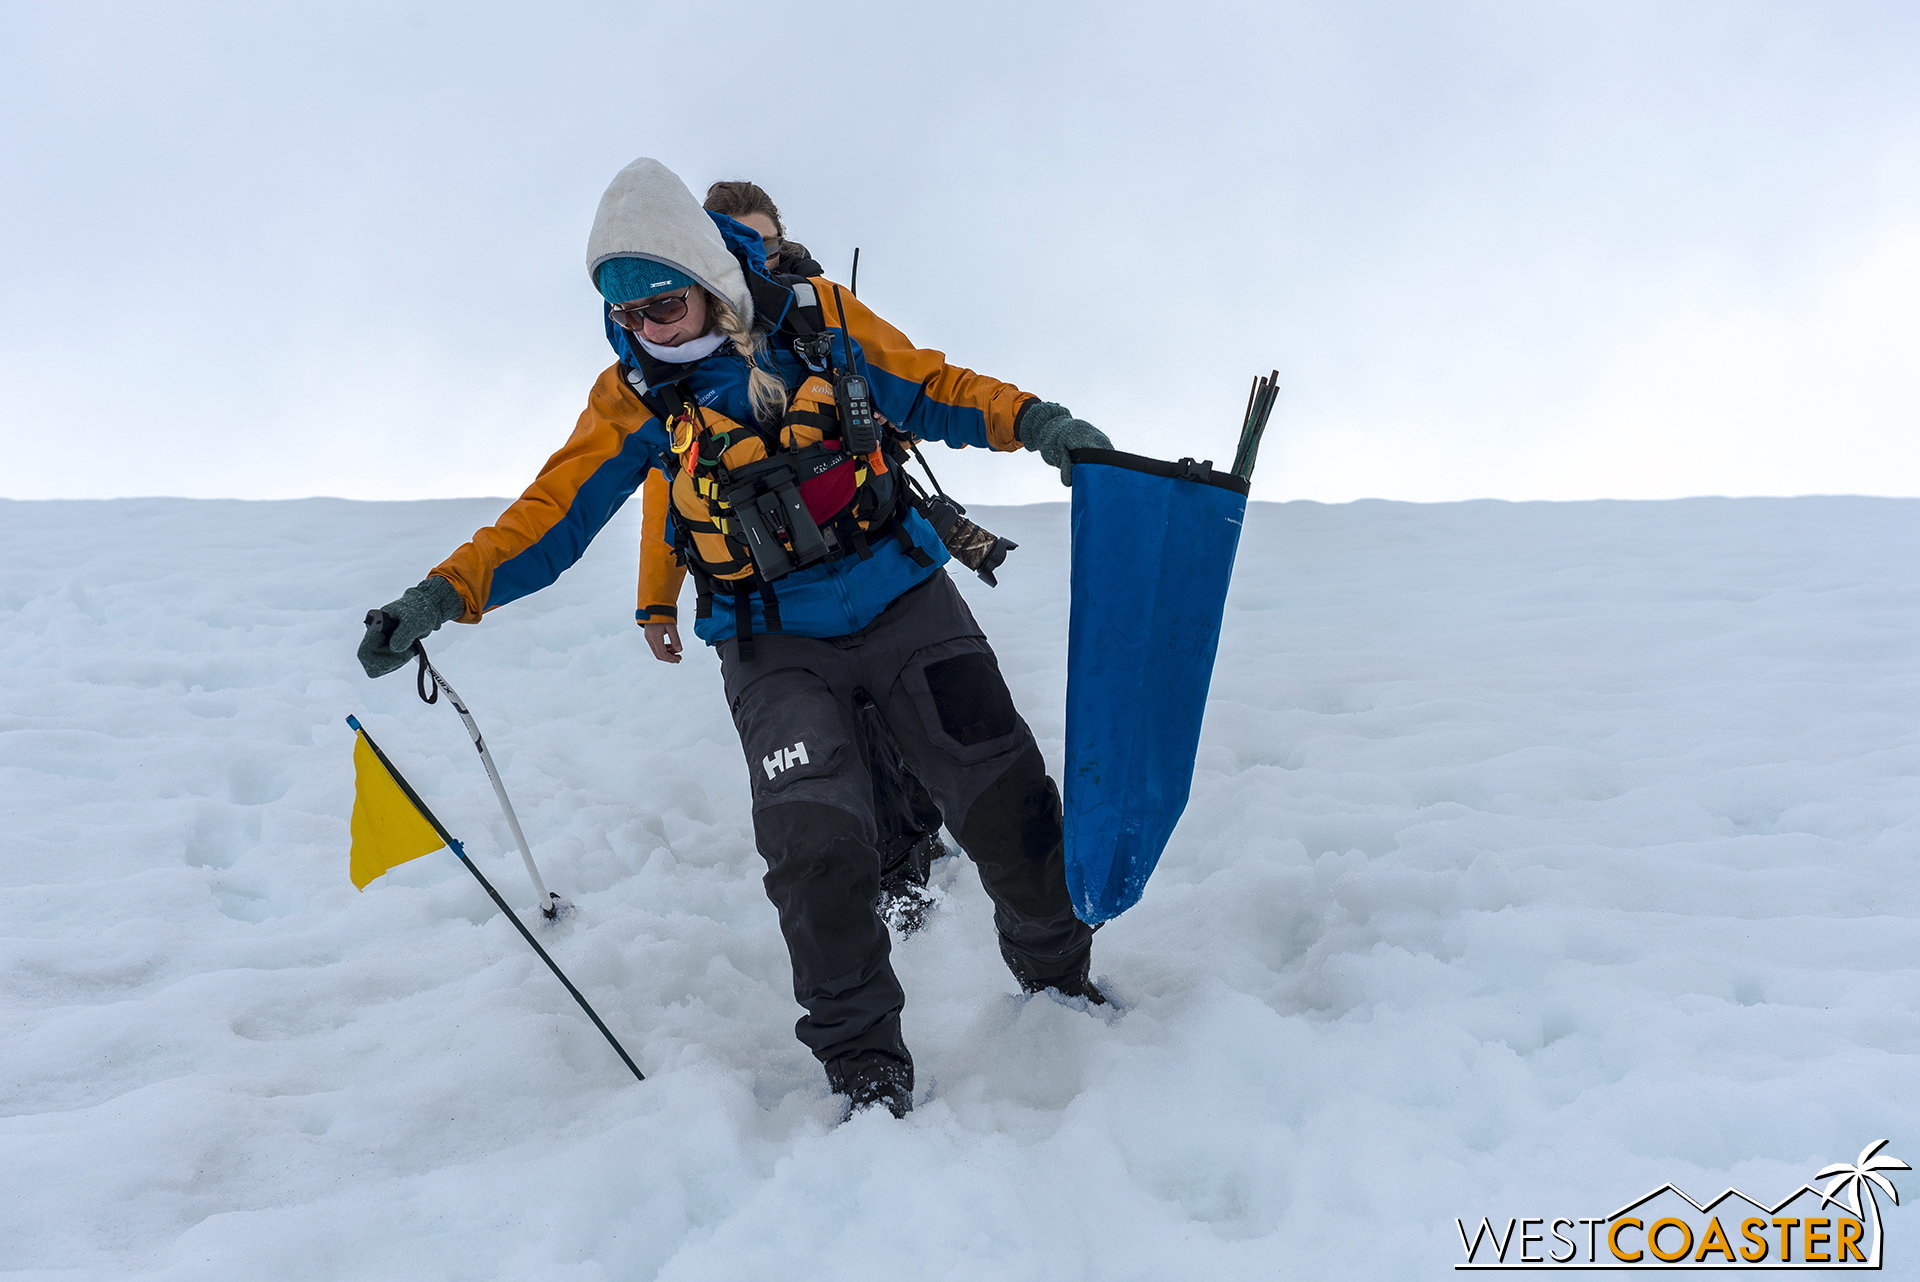 The expedition guides collect the trail marking flags on the way down.